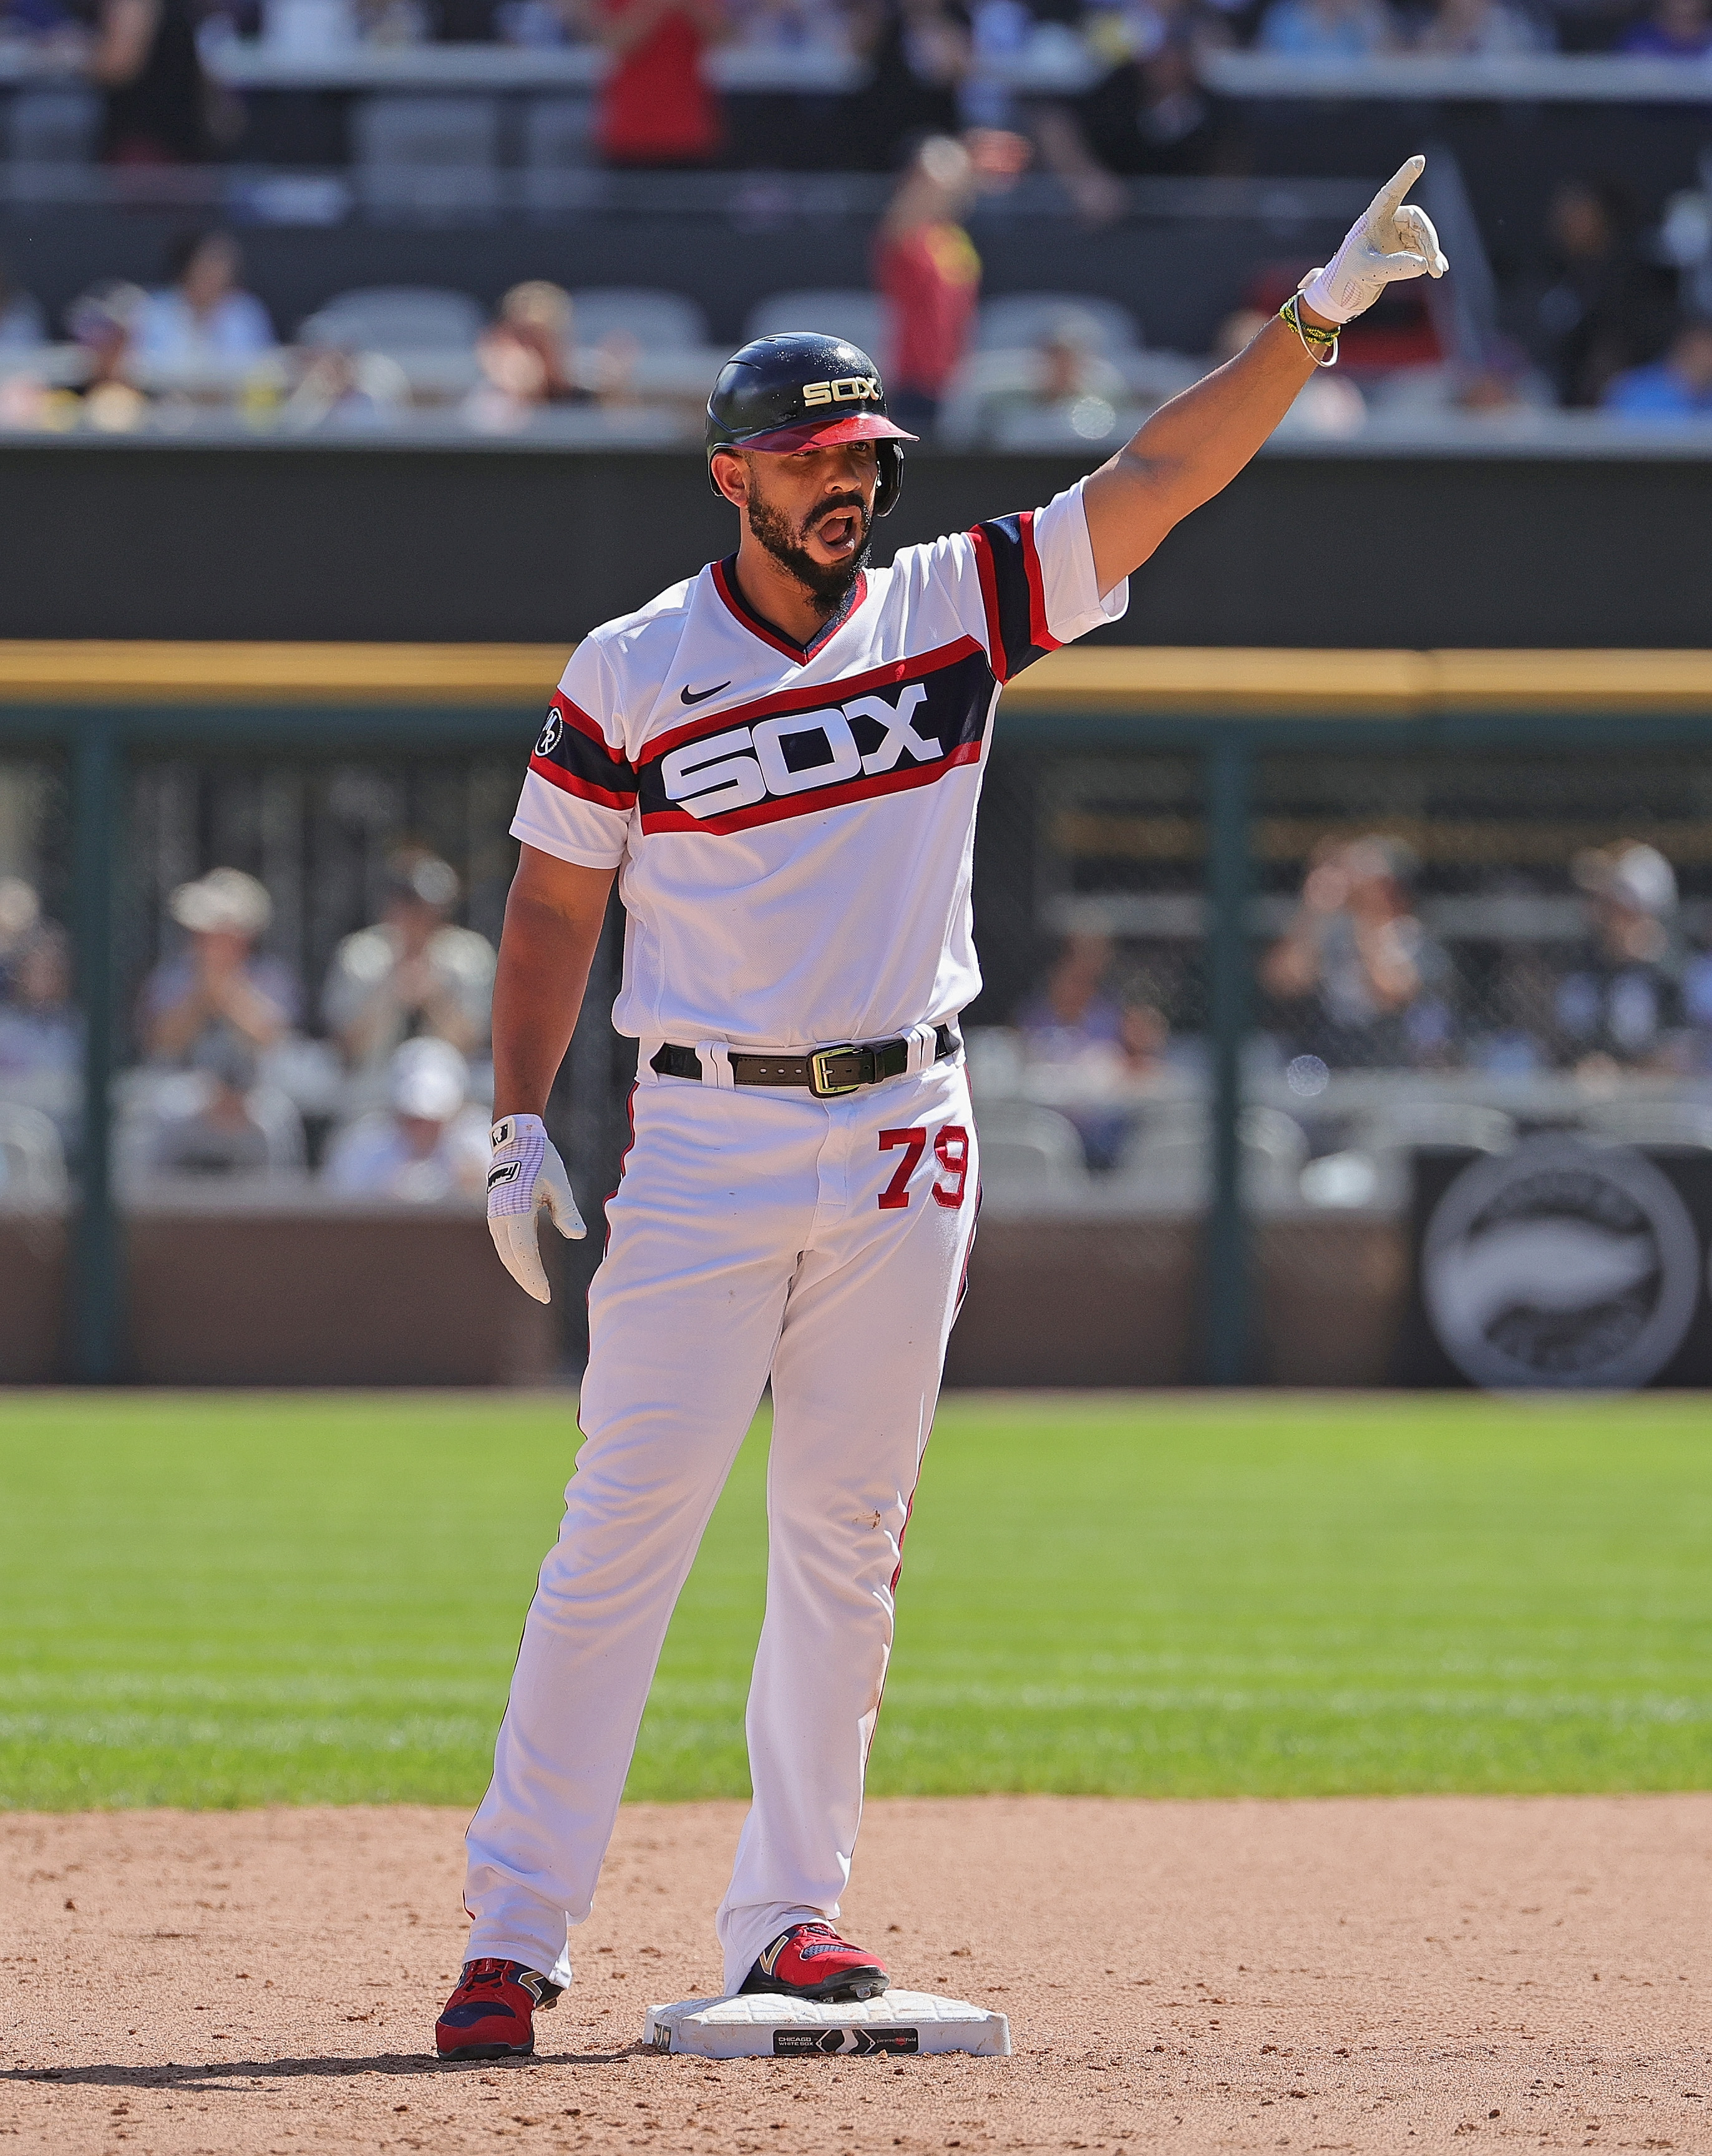 The White Sox' Jose Abreu has hit nine homers this month to go with a .324/.378/.639 hitting line, 1.017 OPS and 24 RBI.